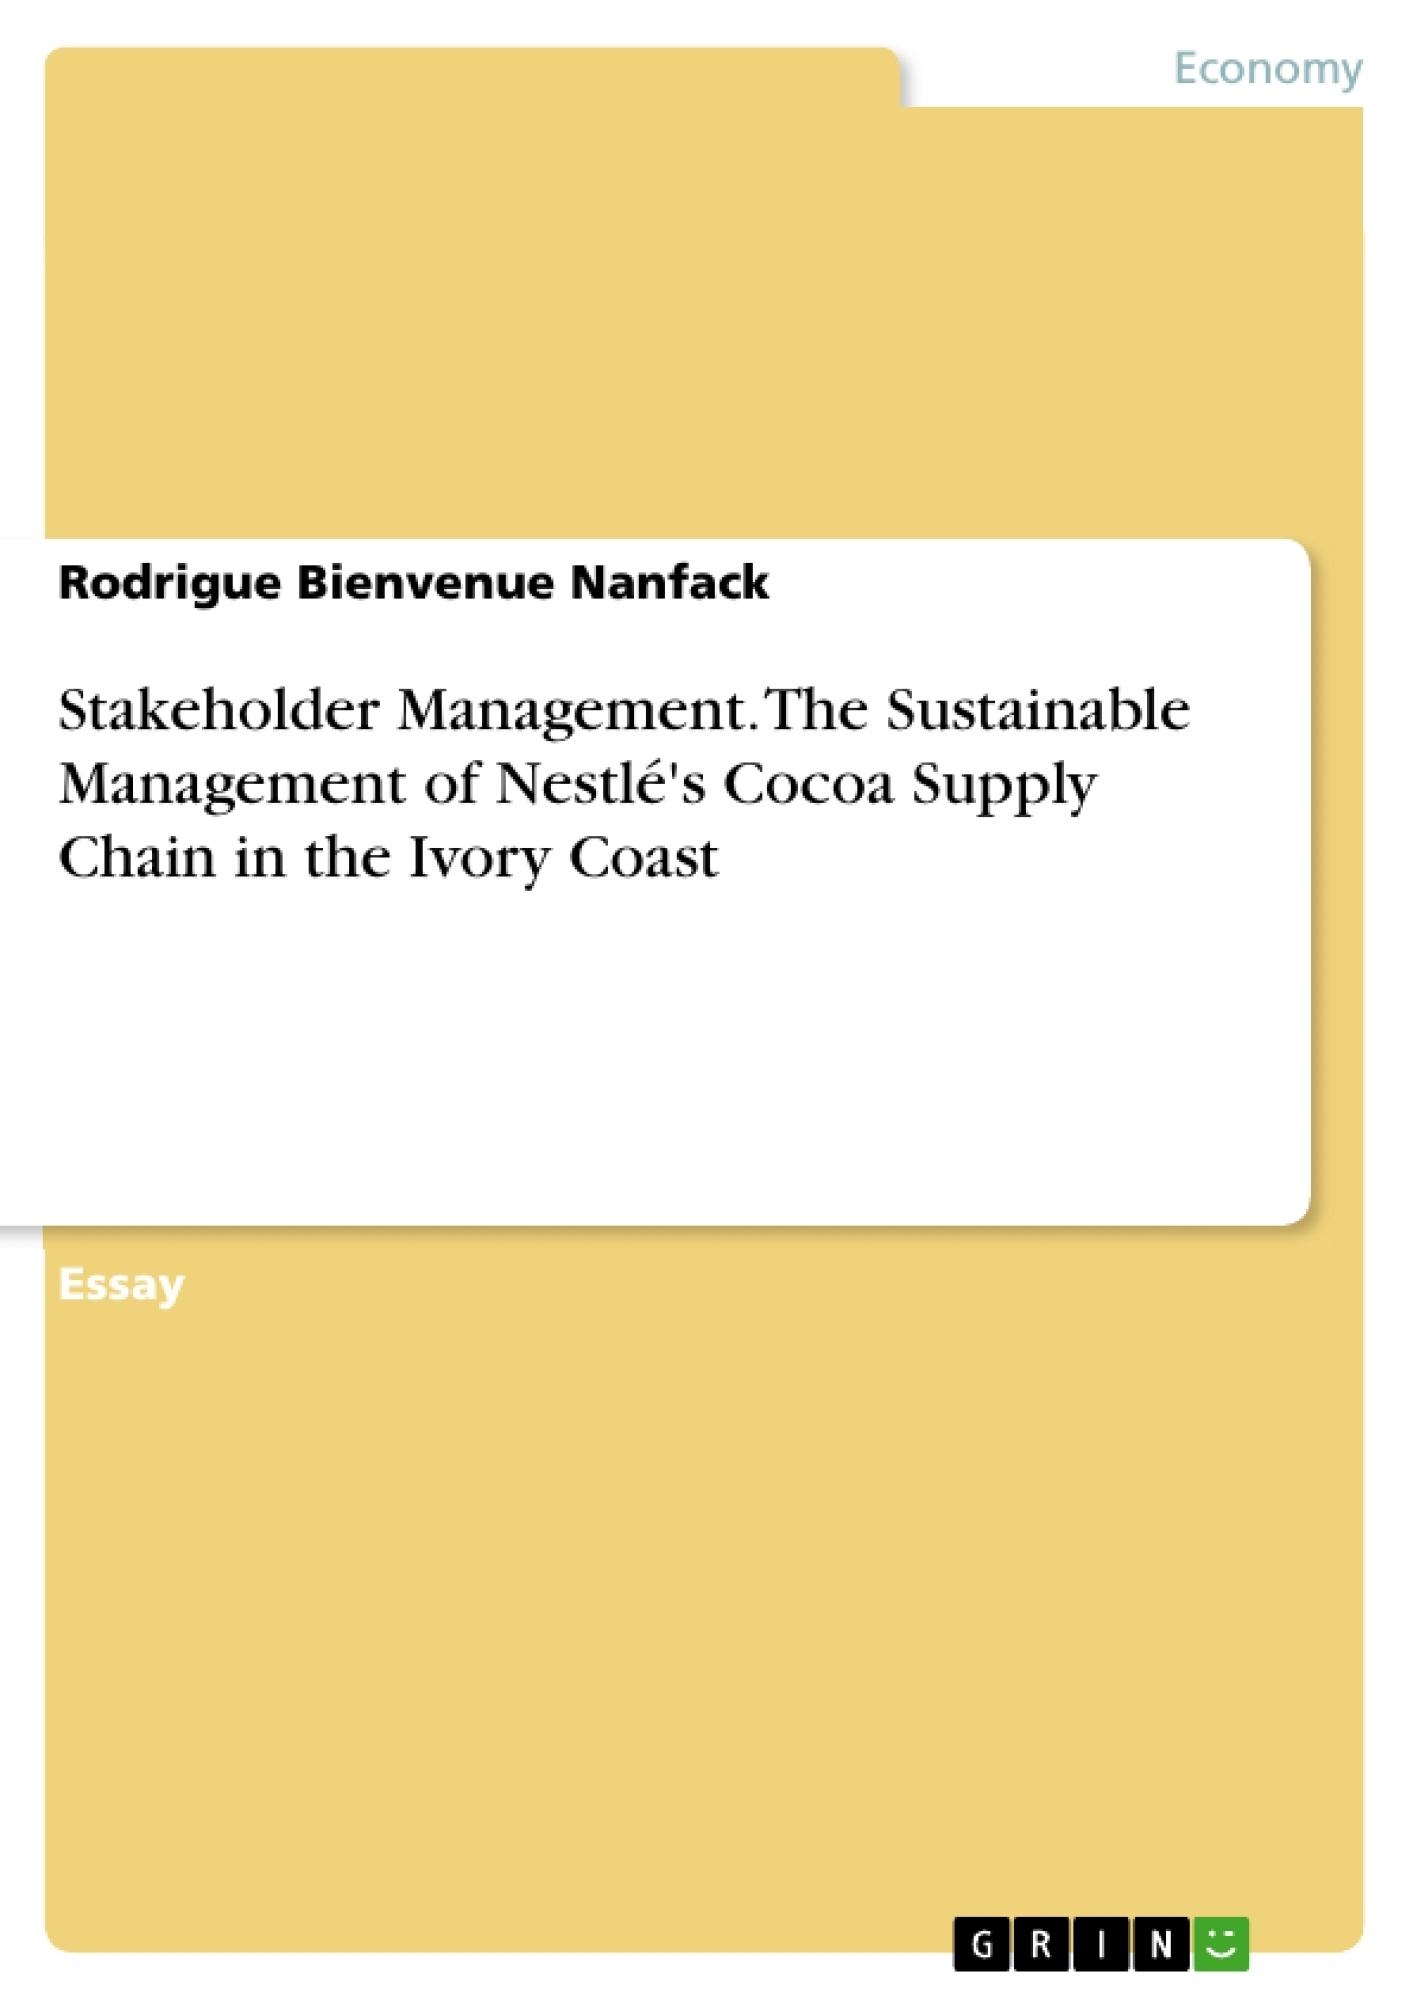 Title: Stakeholder Management. The Sustainable Management of Nestlé's Cocoa Supply Chain in the Ivory Coast